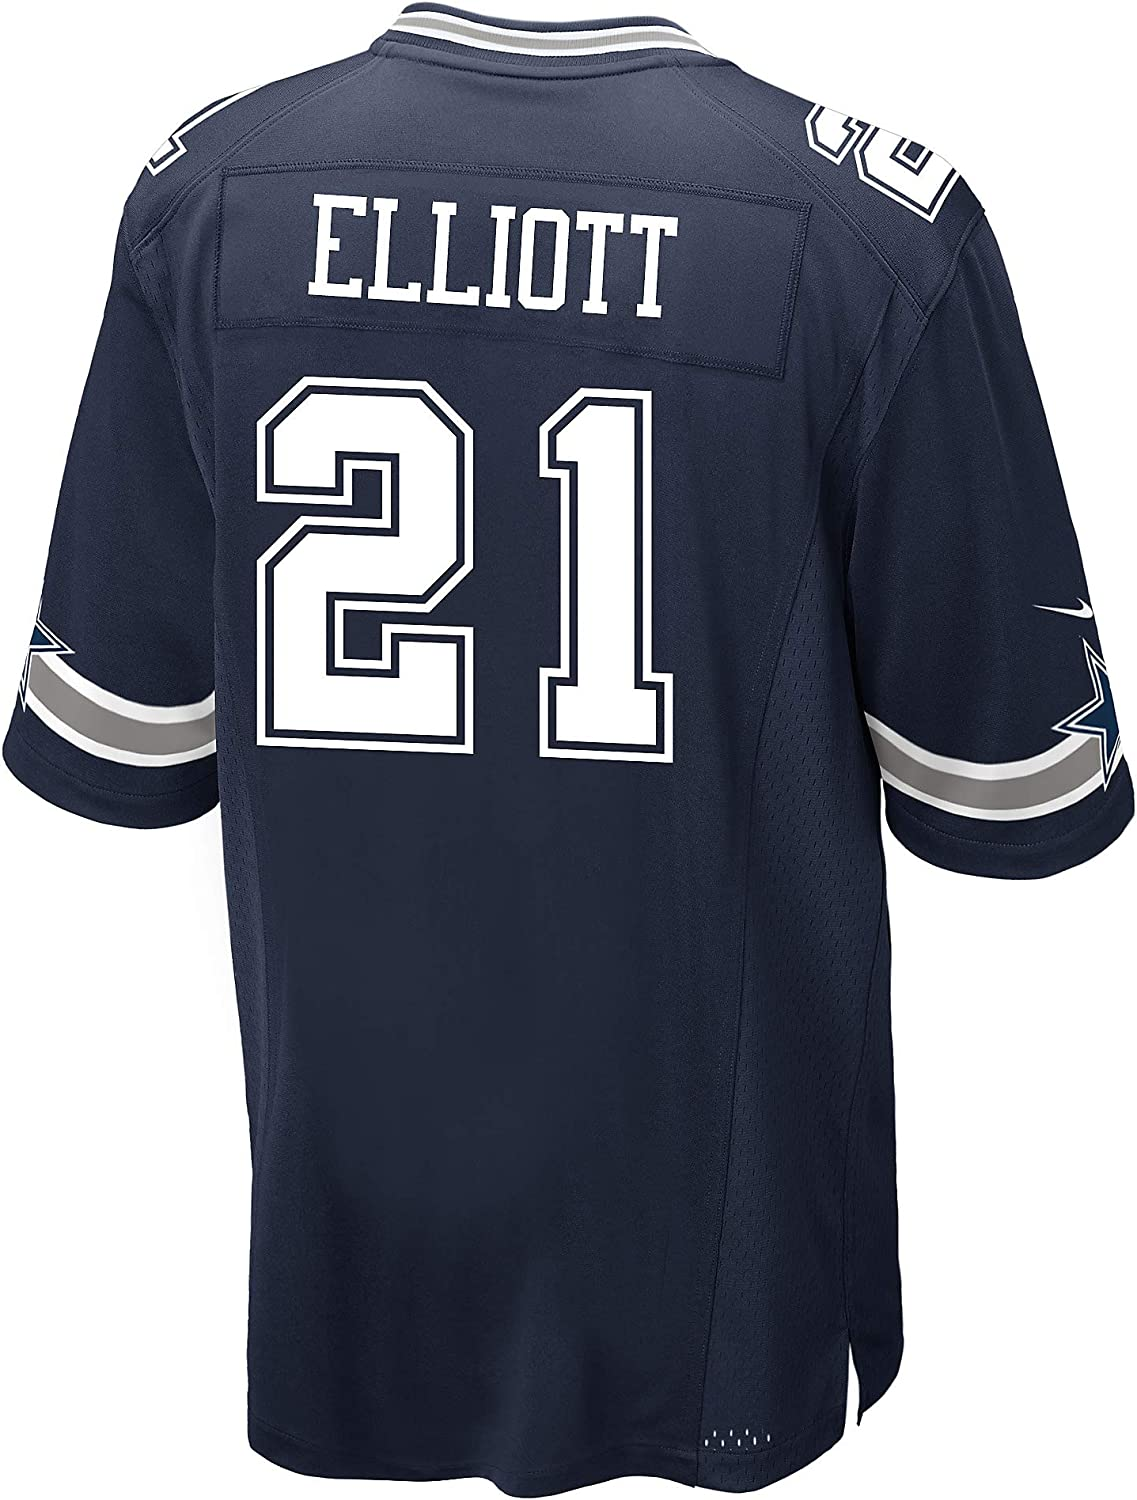 Dallas Cowboys Mens Ezekiel Elliot Nike